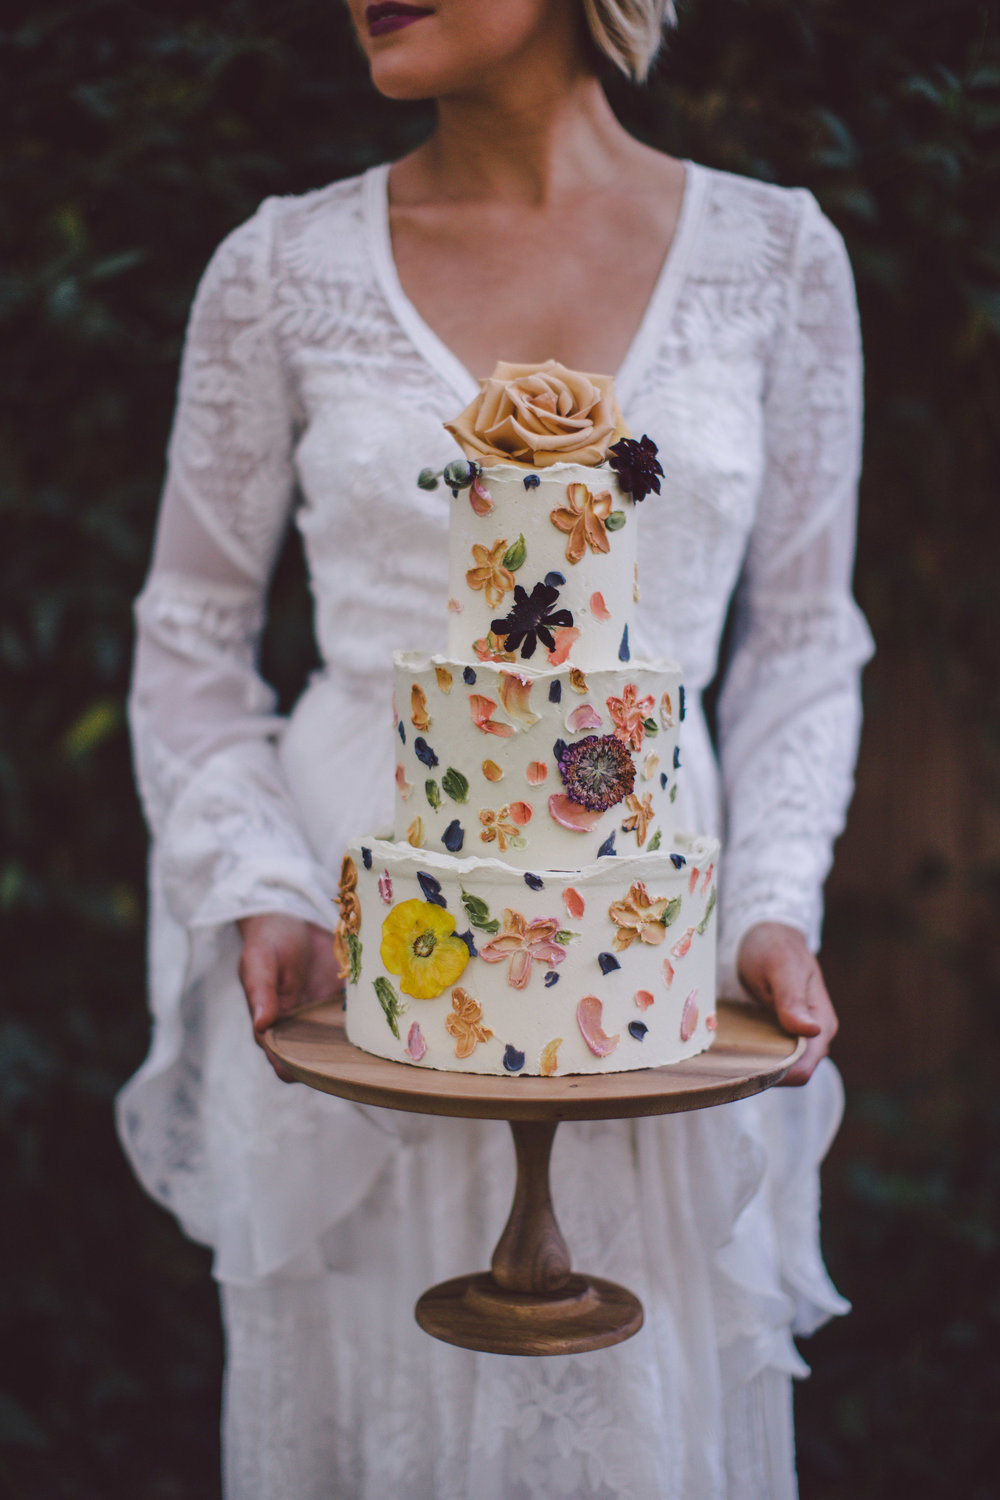 wedding-cake-pressed-dried-flowers.jpg